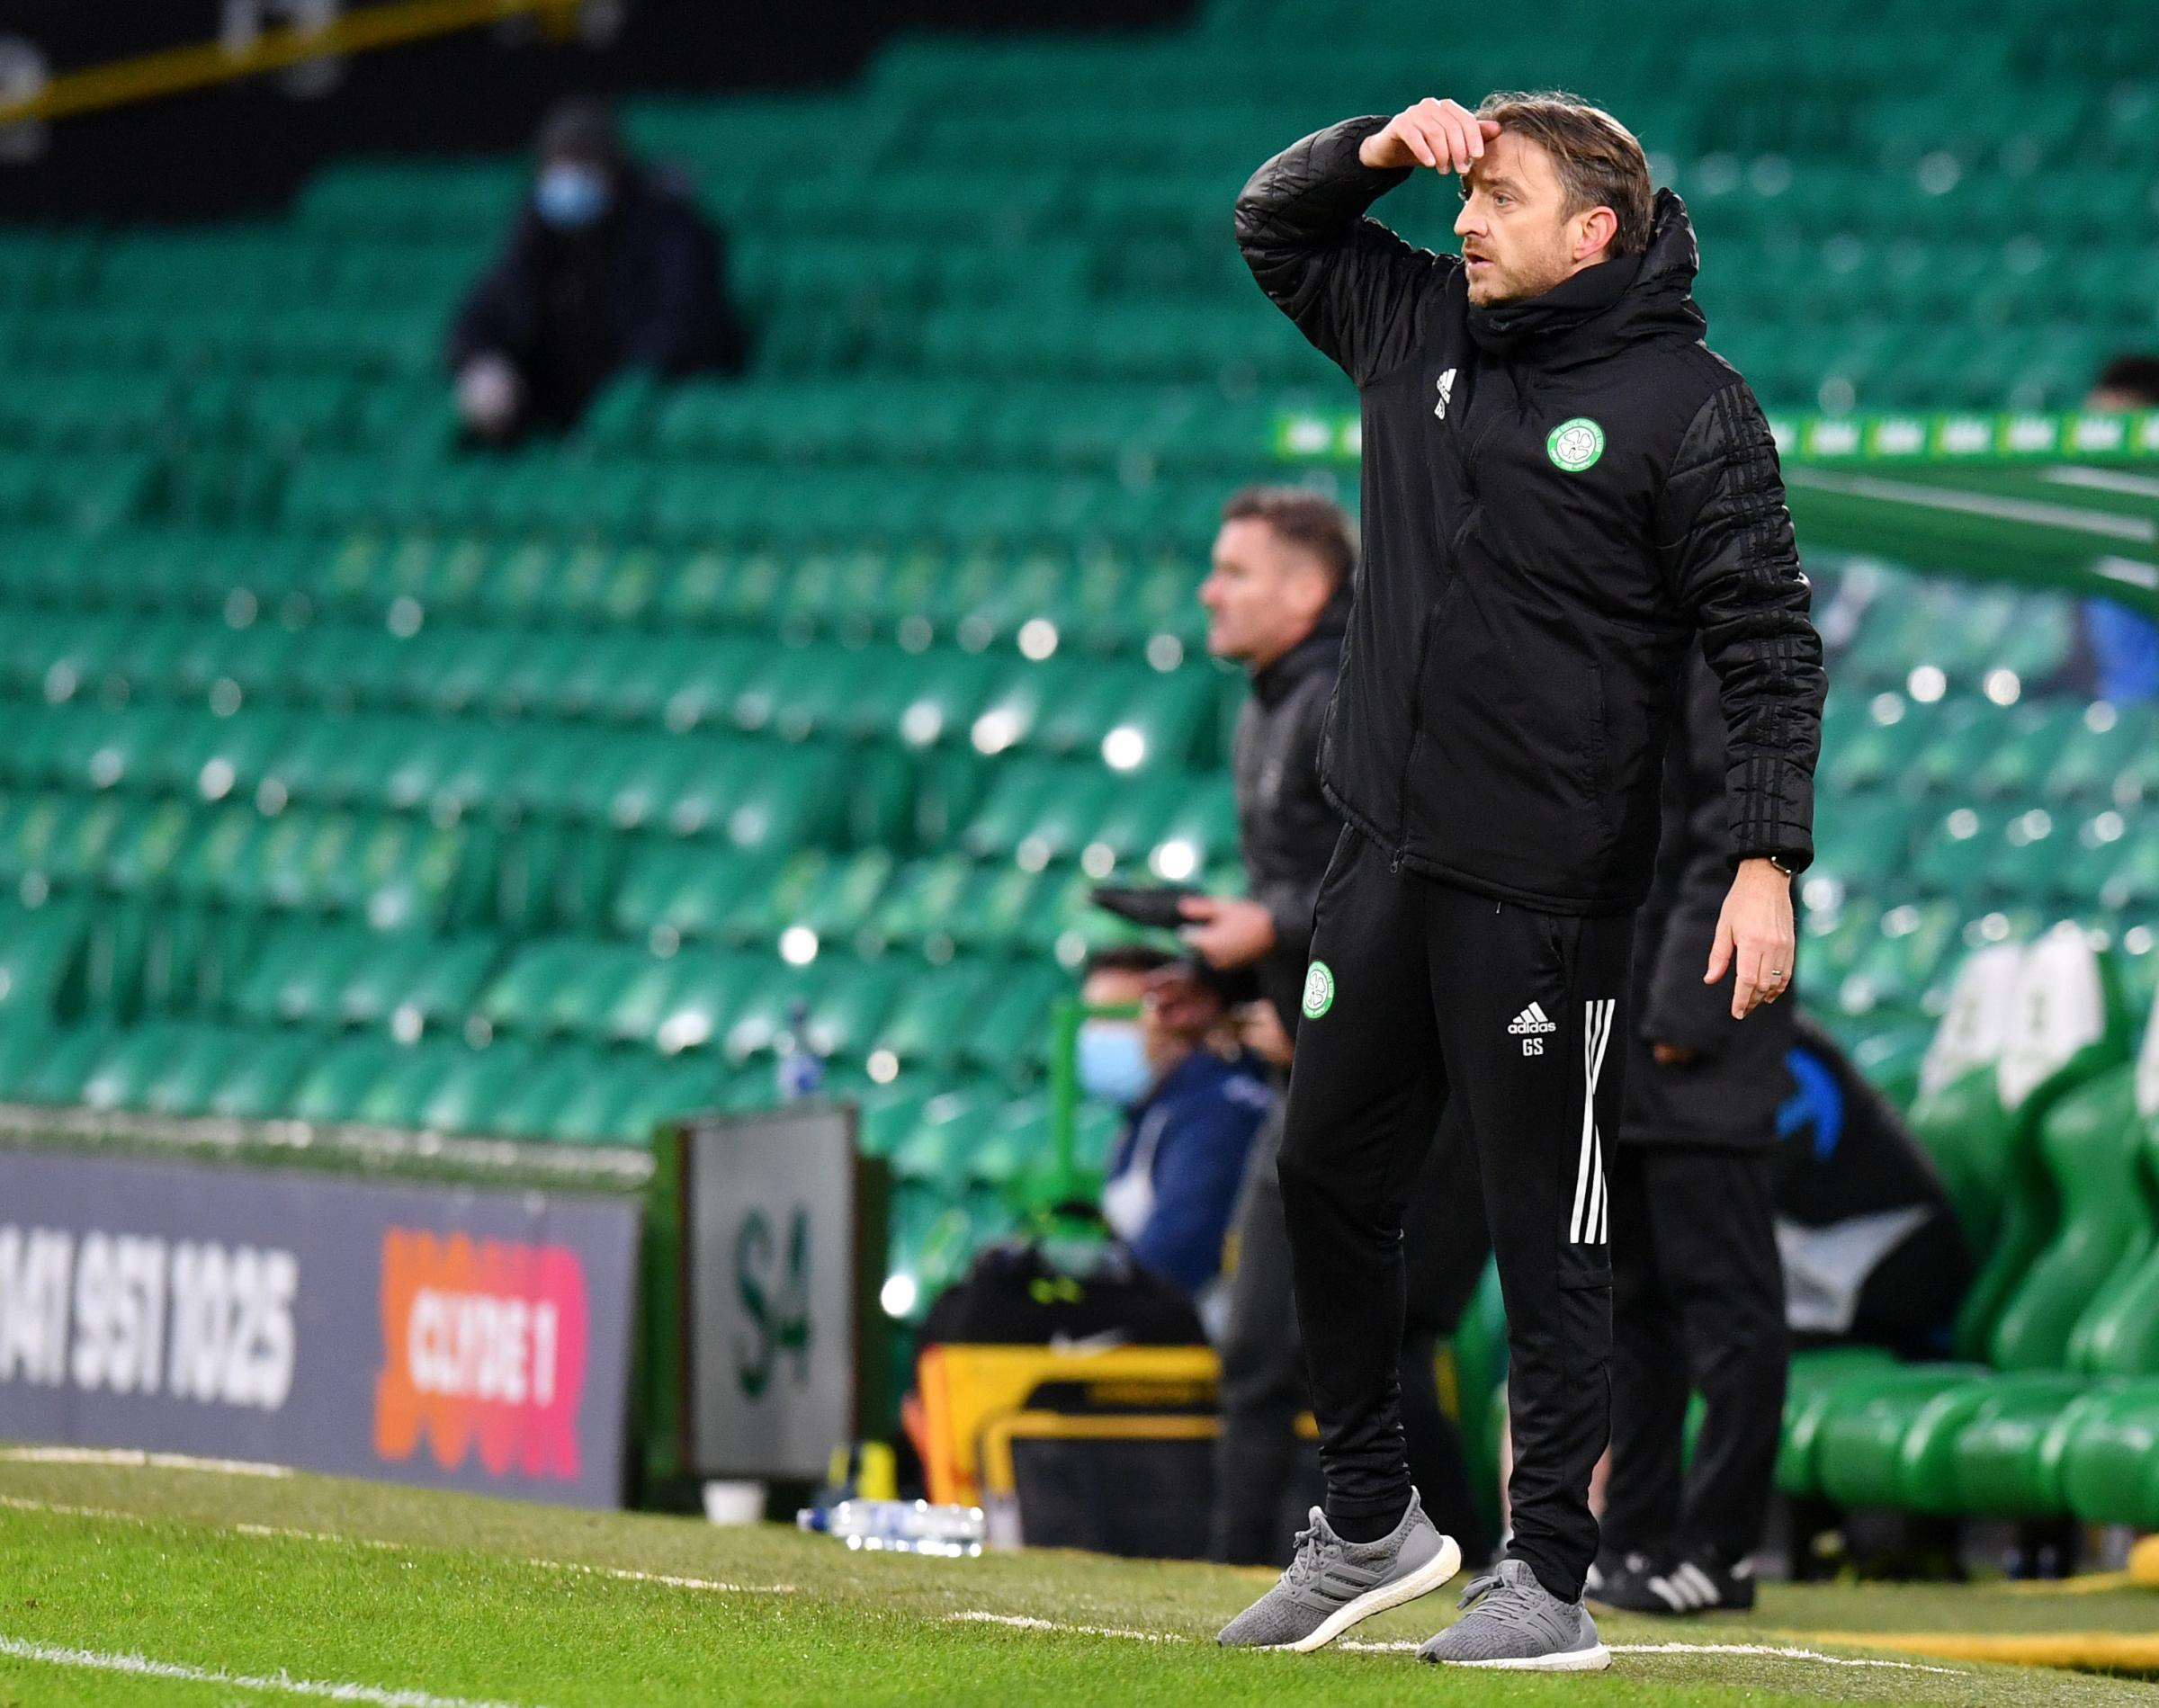 Celtic 0 Livingston 0: Five things we learned as sorry Celtic stumble again